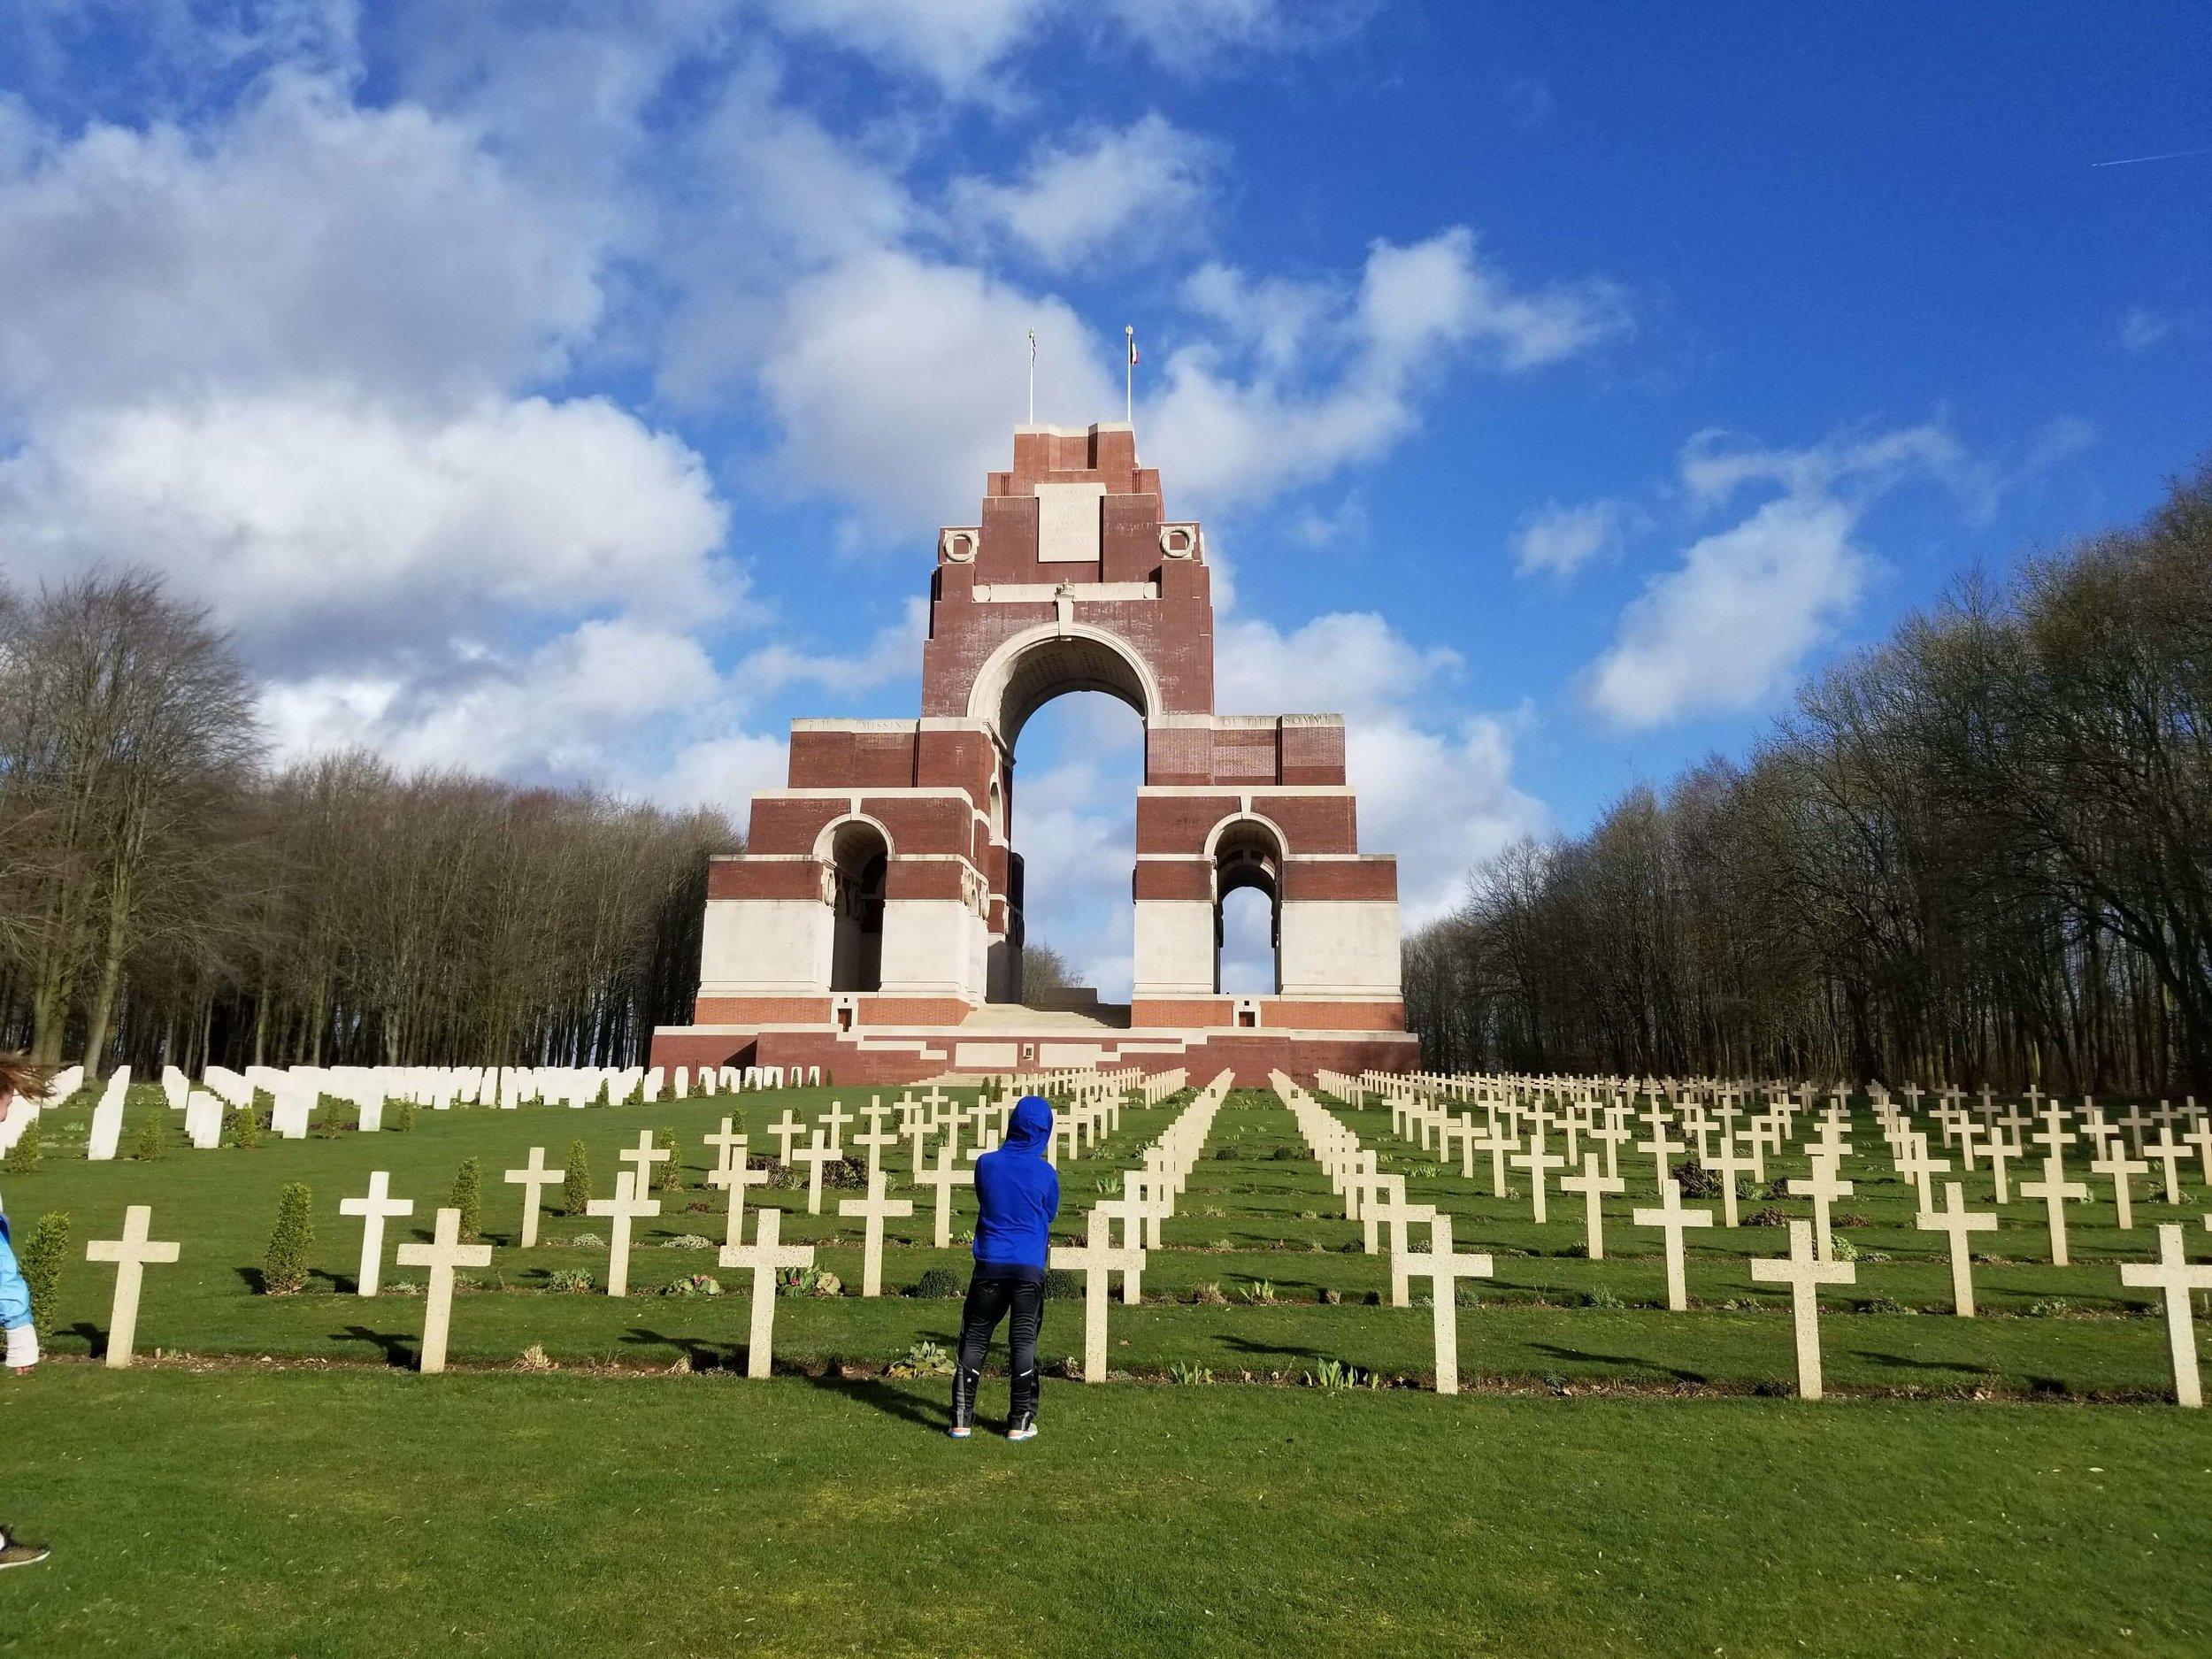 The Memorial to the Missing in Thiepval, France, commemorating those that died in the Battle of the Somme in World War 1.